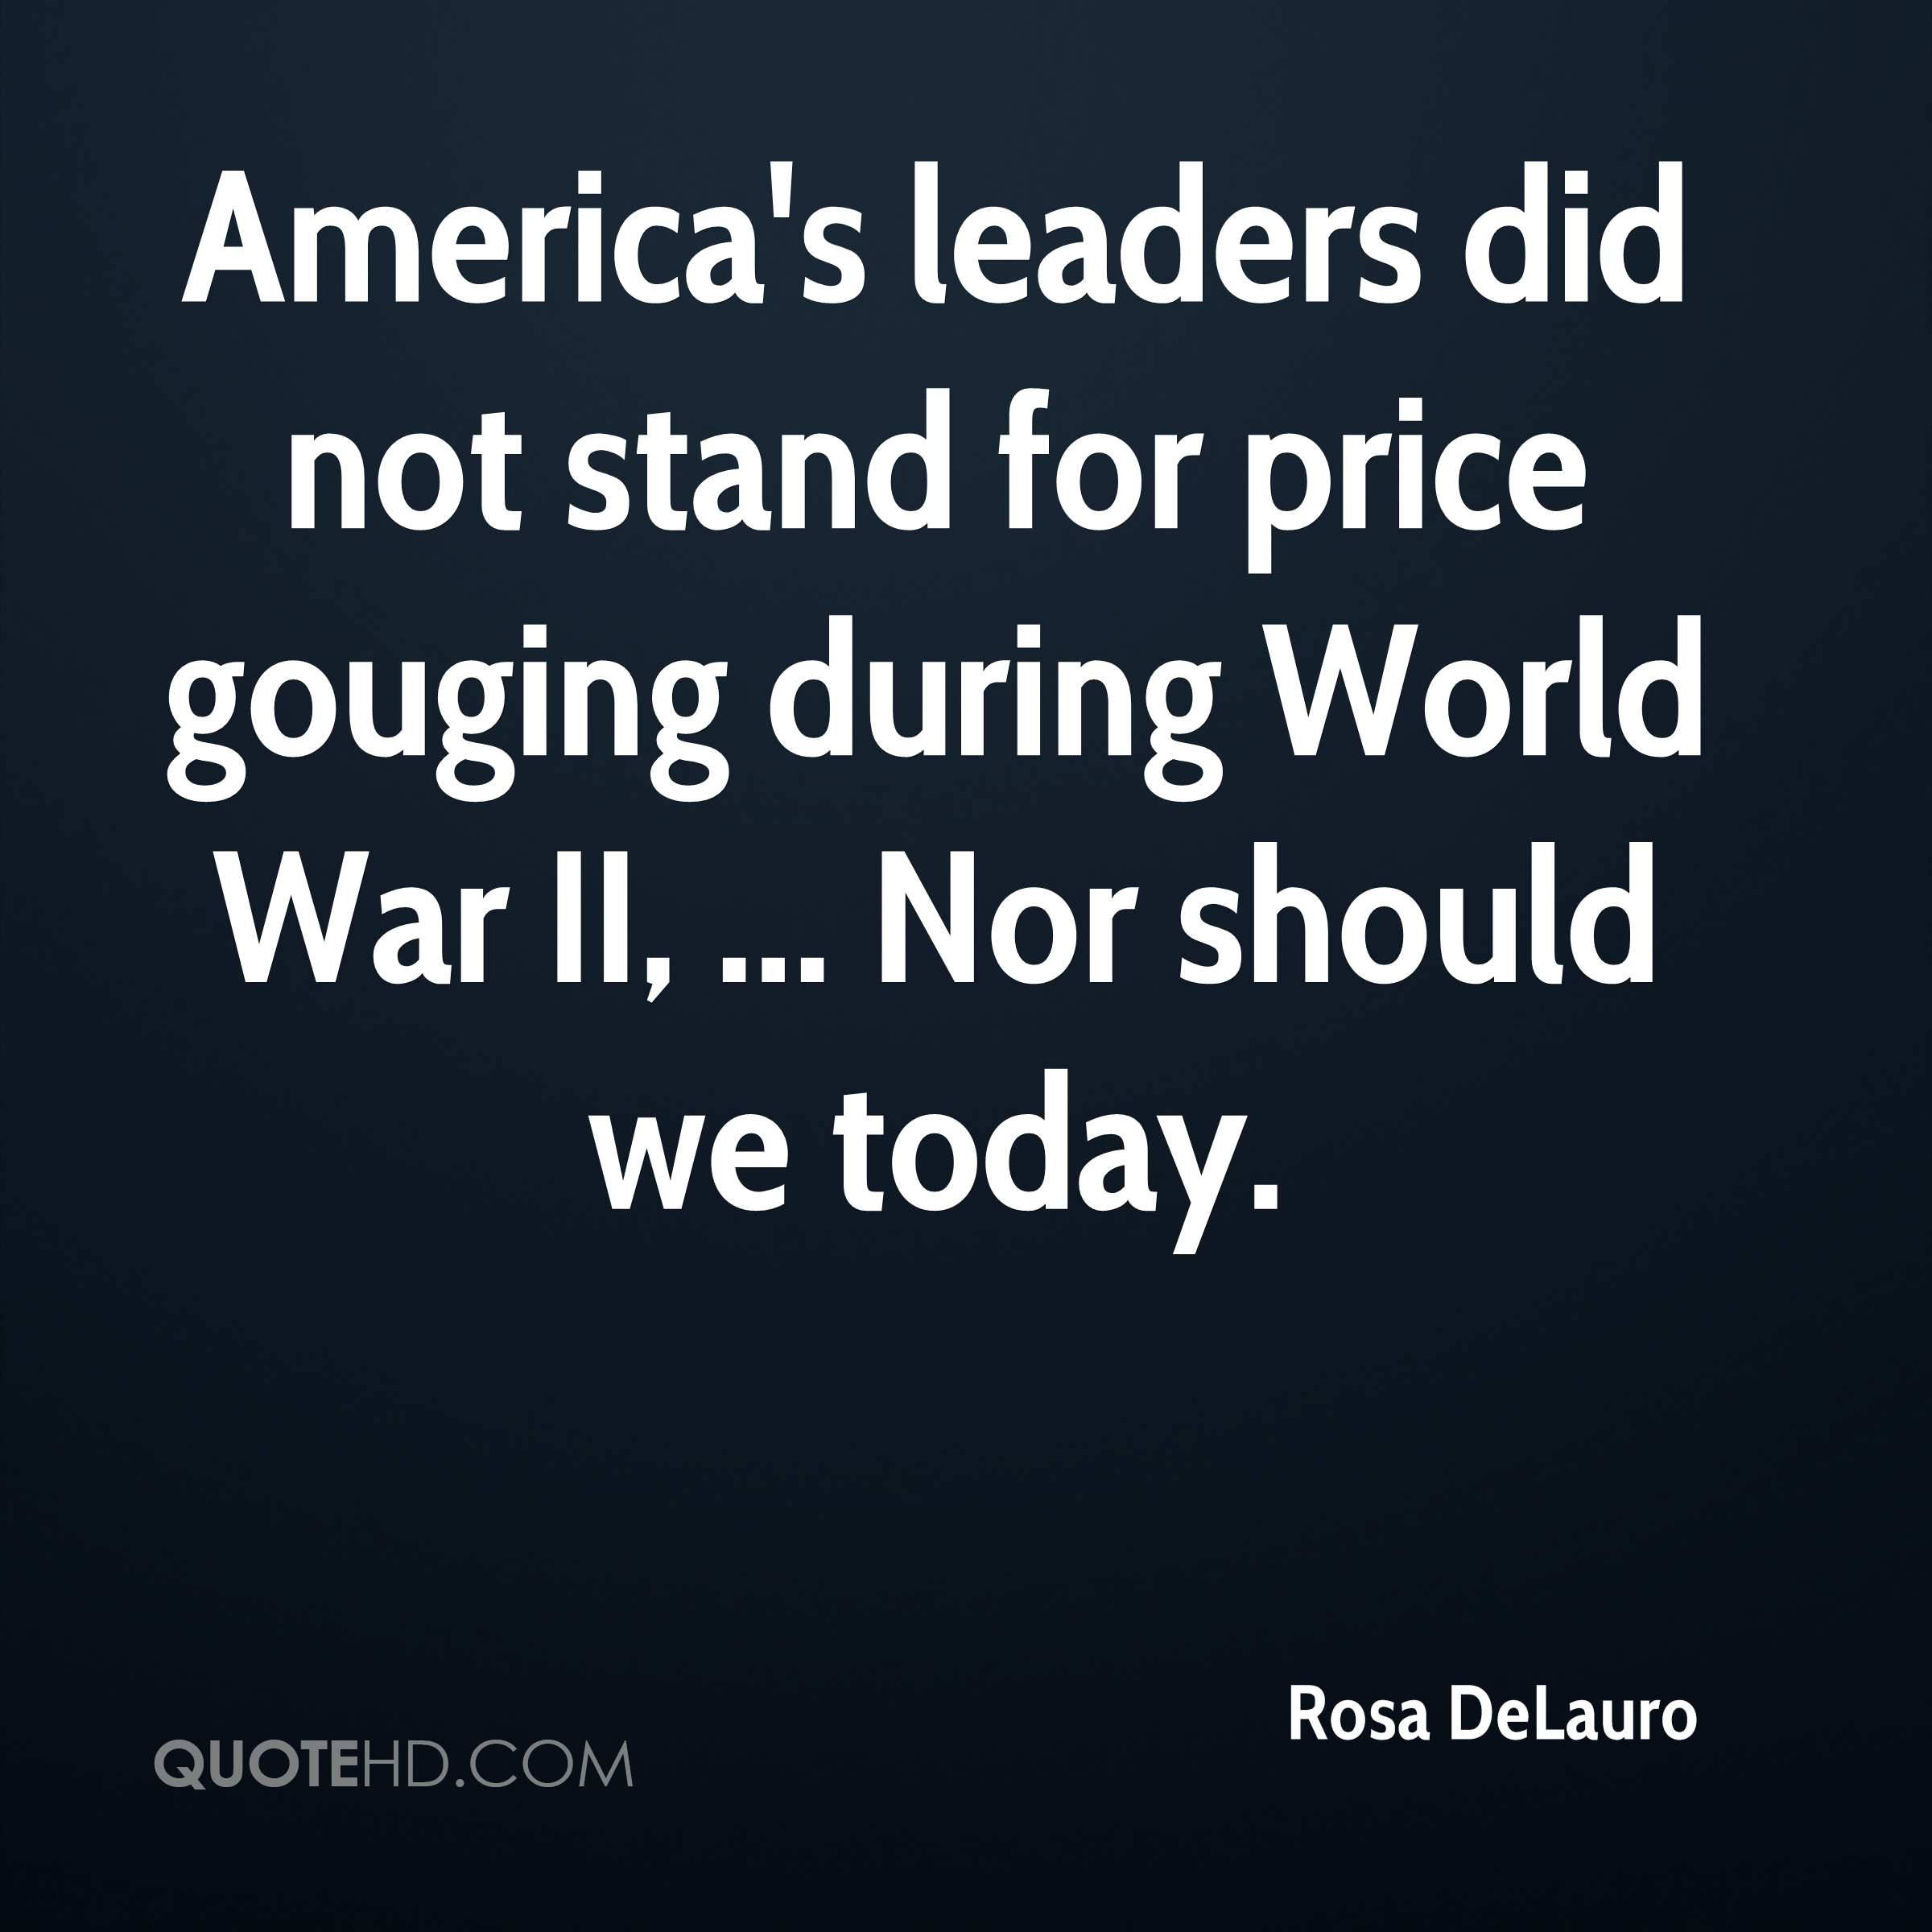 America's leaders did not stand for price gouging during World War II, ... Nor should we today.